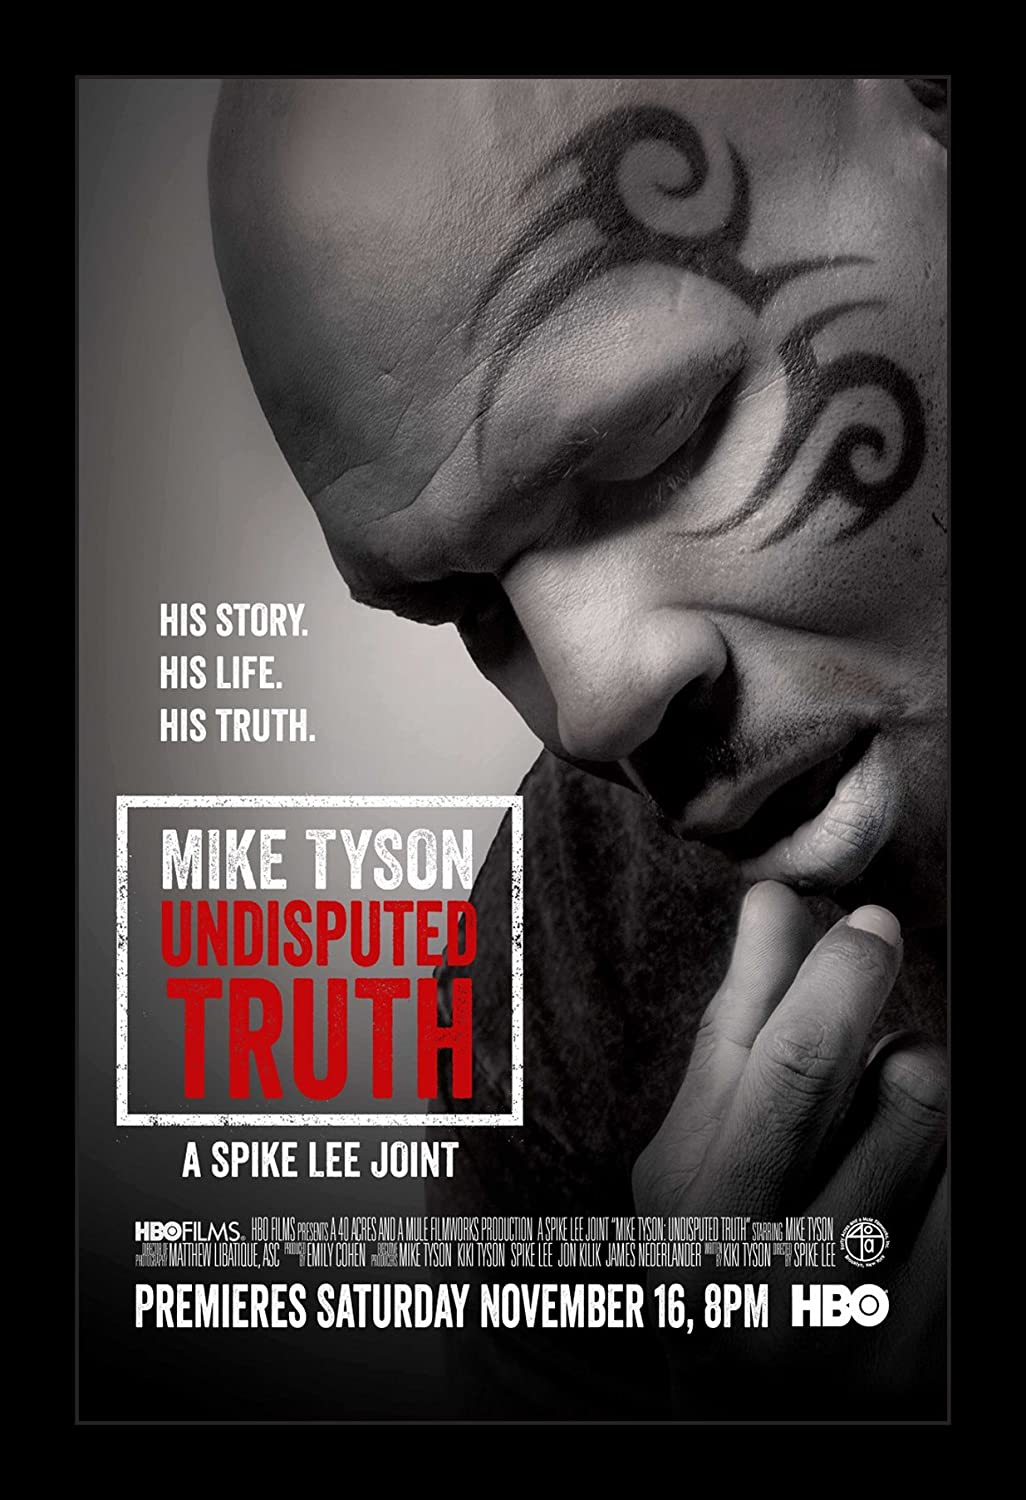 Amazon Com Wallspace Mike Tyson Undisputed Truth 11x17 Framed Movie Poster Posters Prints